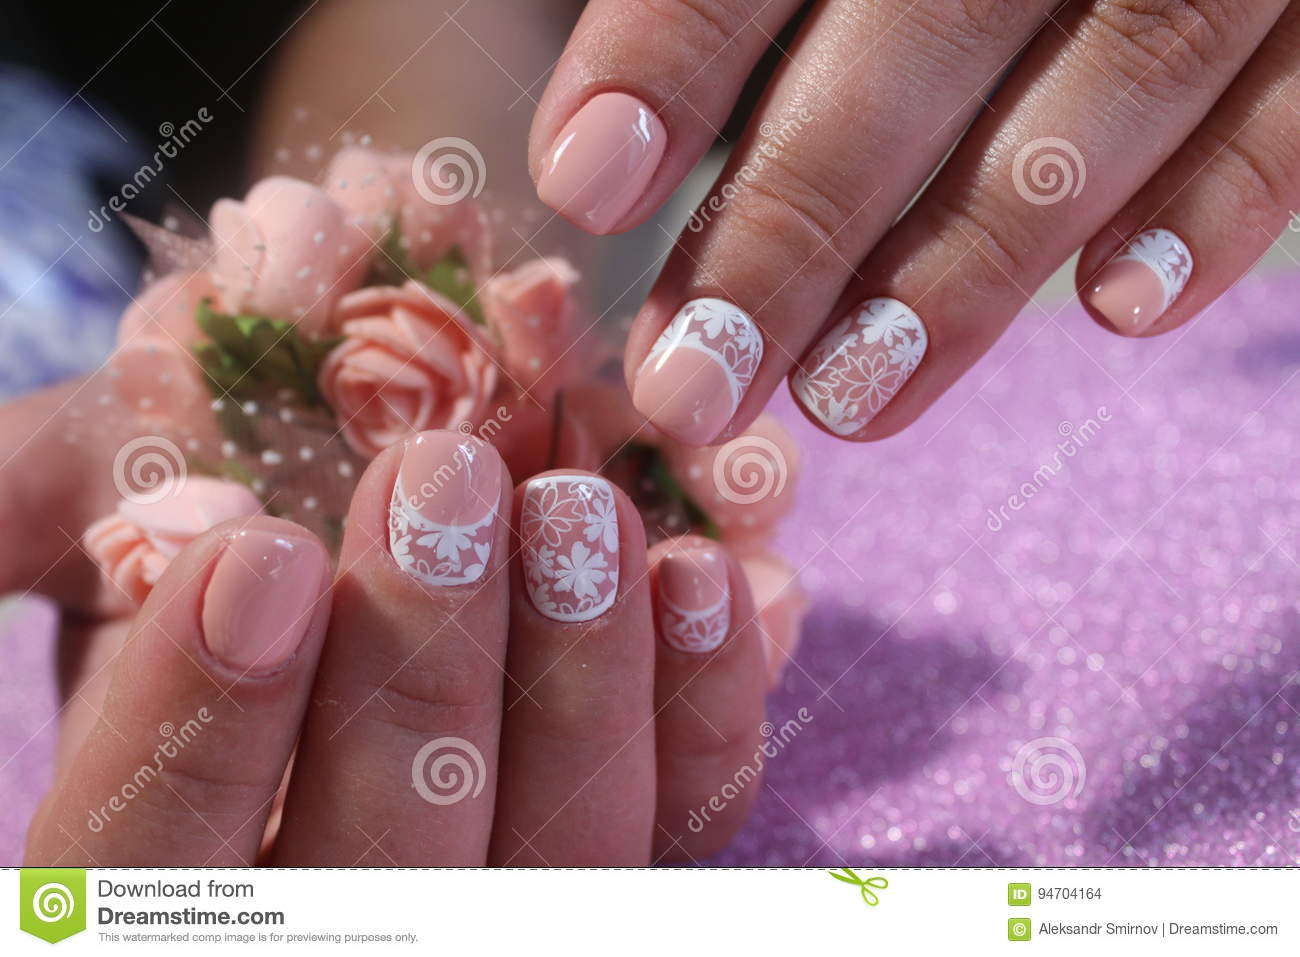 Youth Nail Design In Pastel Shades Stock Photo Image Of Color